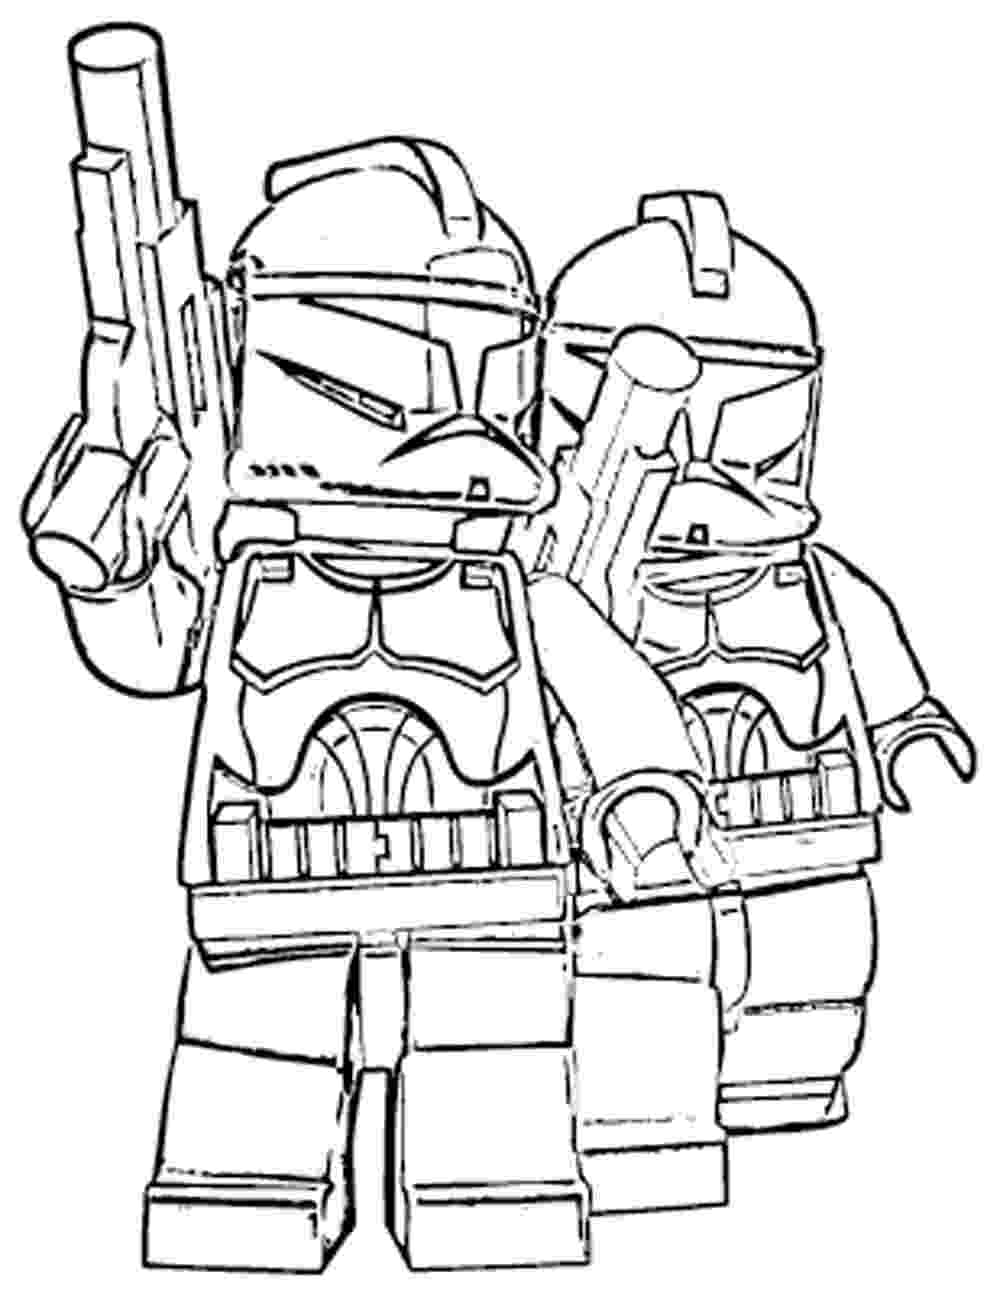 lego minifigures coloring pages lego minifigures coloring pages coloring pages to coloring minifigures pages lego